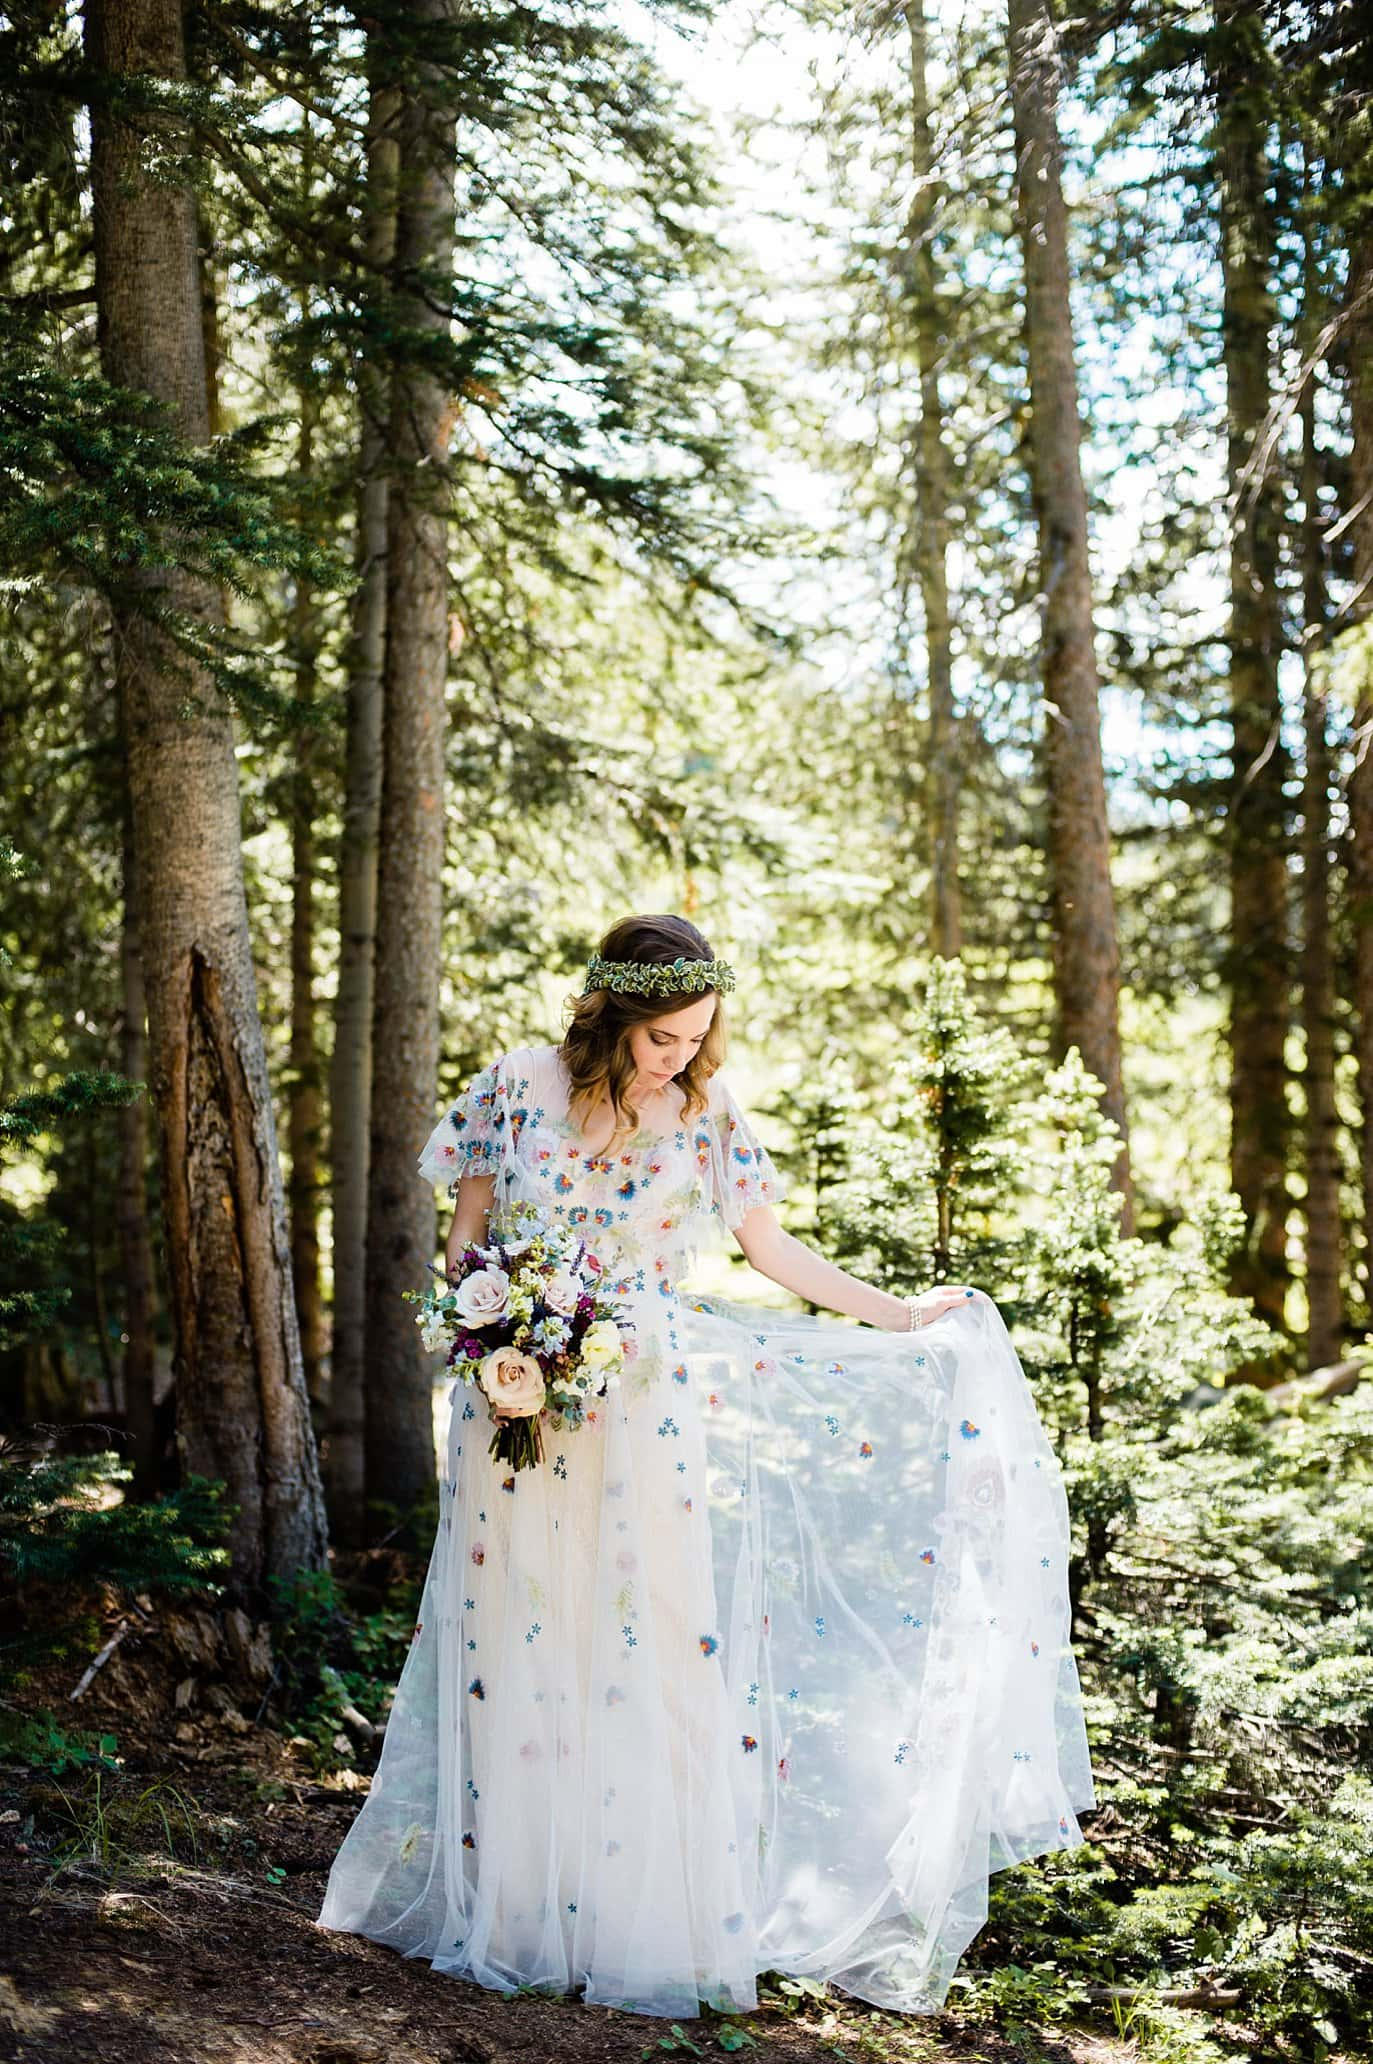 bride in unique floral chiffon wedding dress in sunlight in trees at Arapahoe Basin wedding by Frisco wedding photographer Jennie Crate